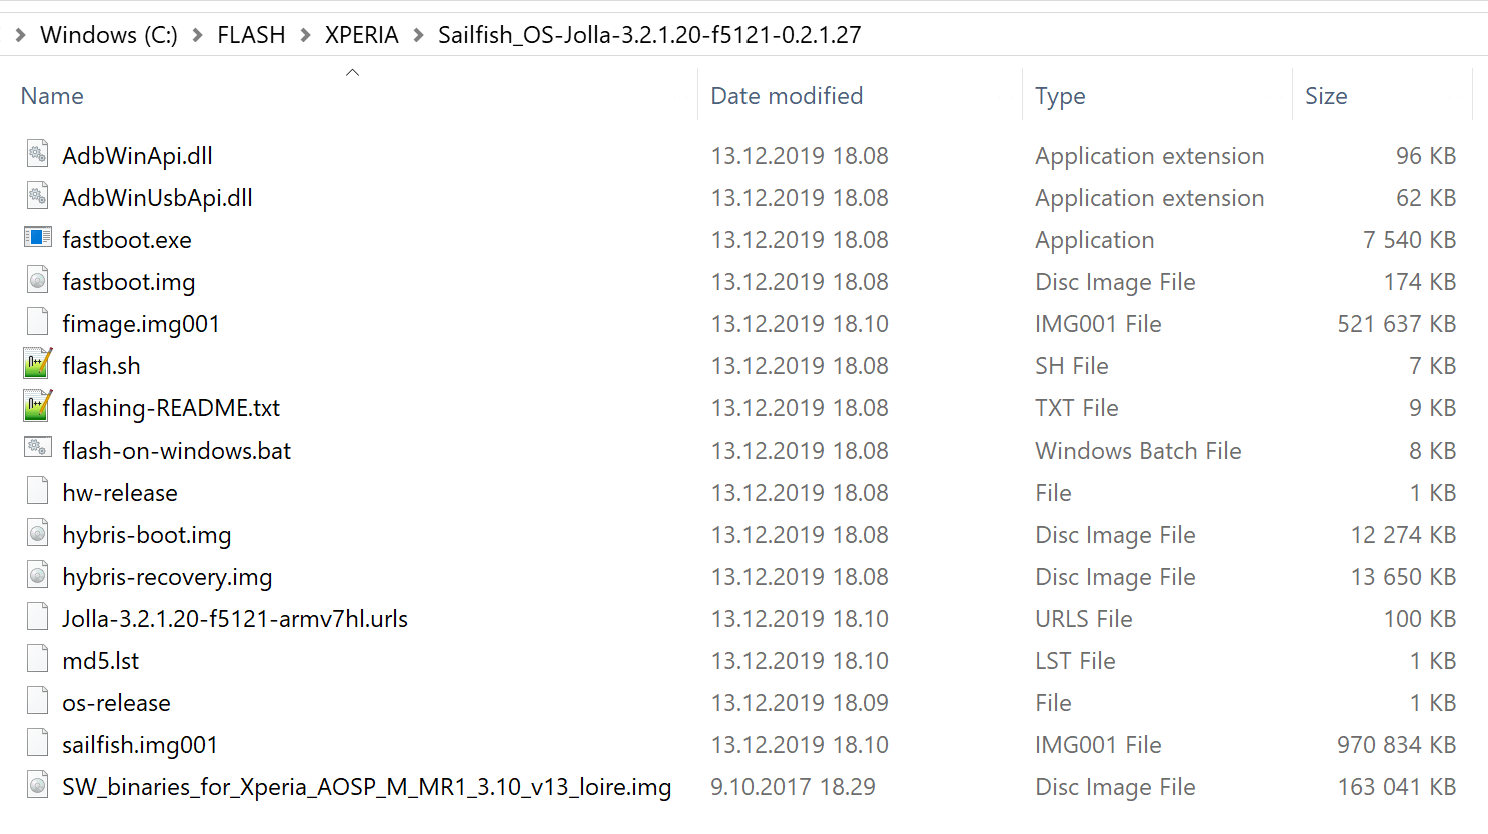 Contents_of_Sailfish_3.2.1_directory_for_Xperia_X.png